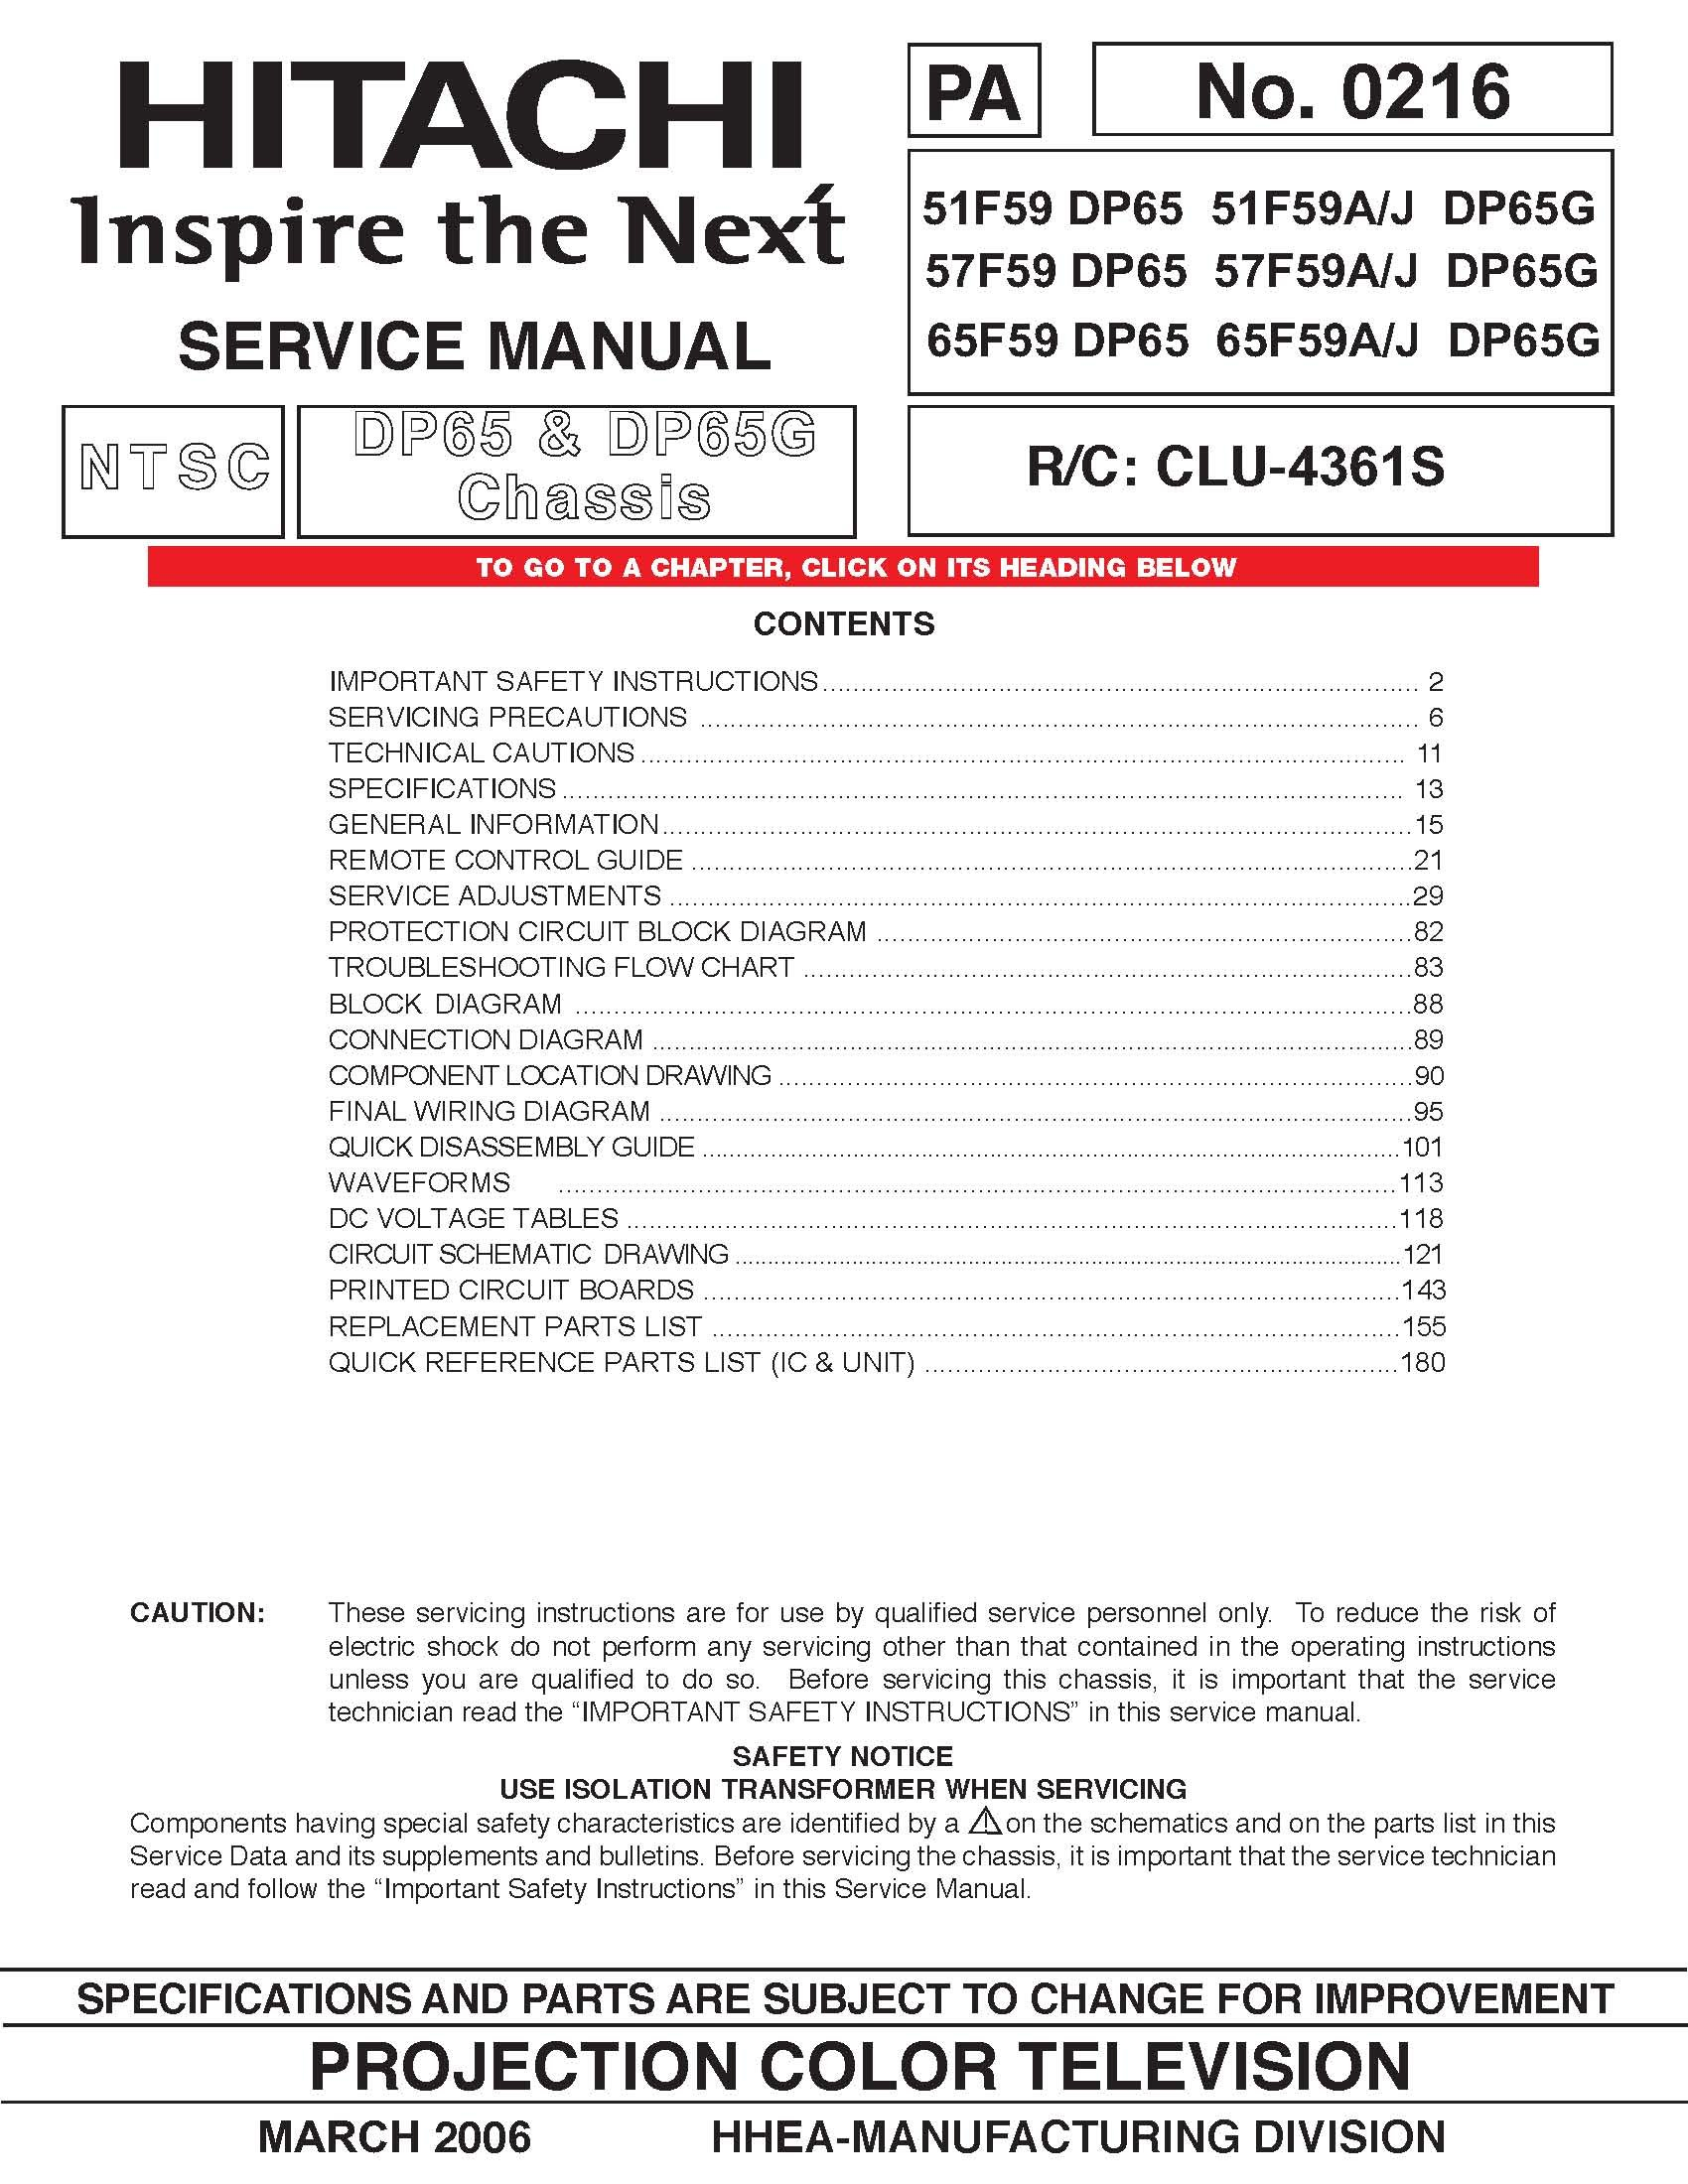 Hitachi 51f59 Manual Pdf